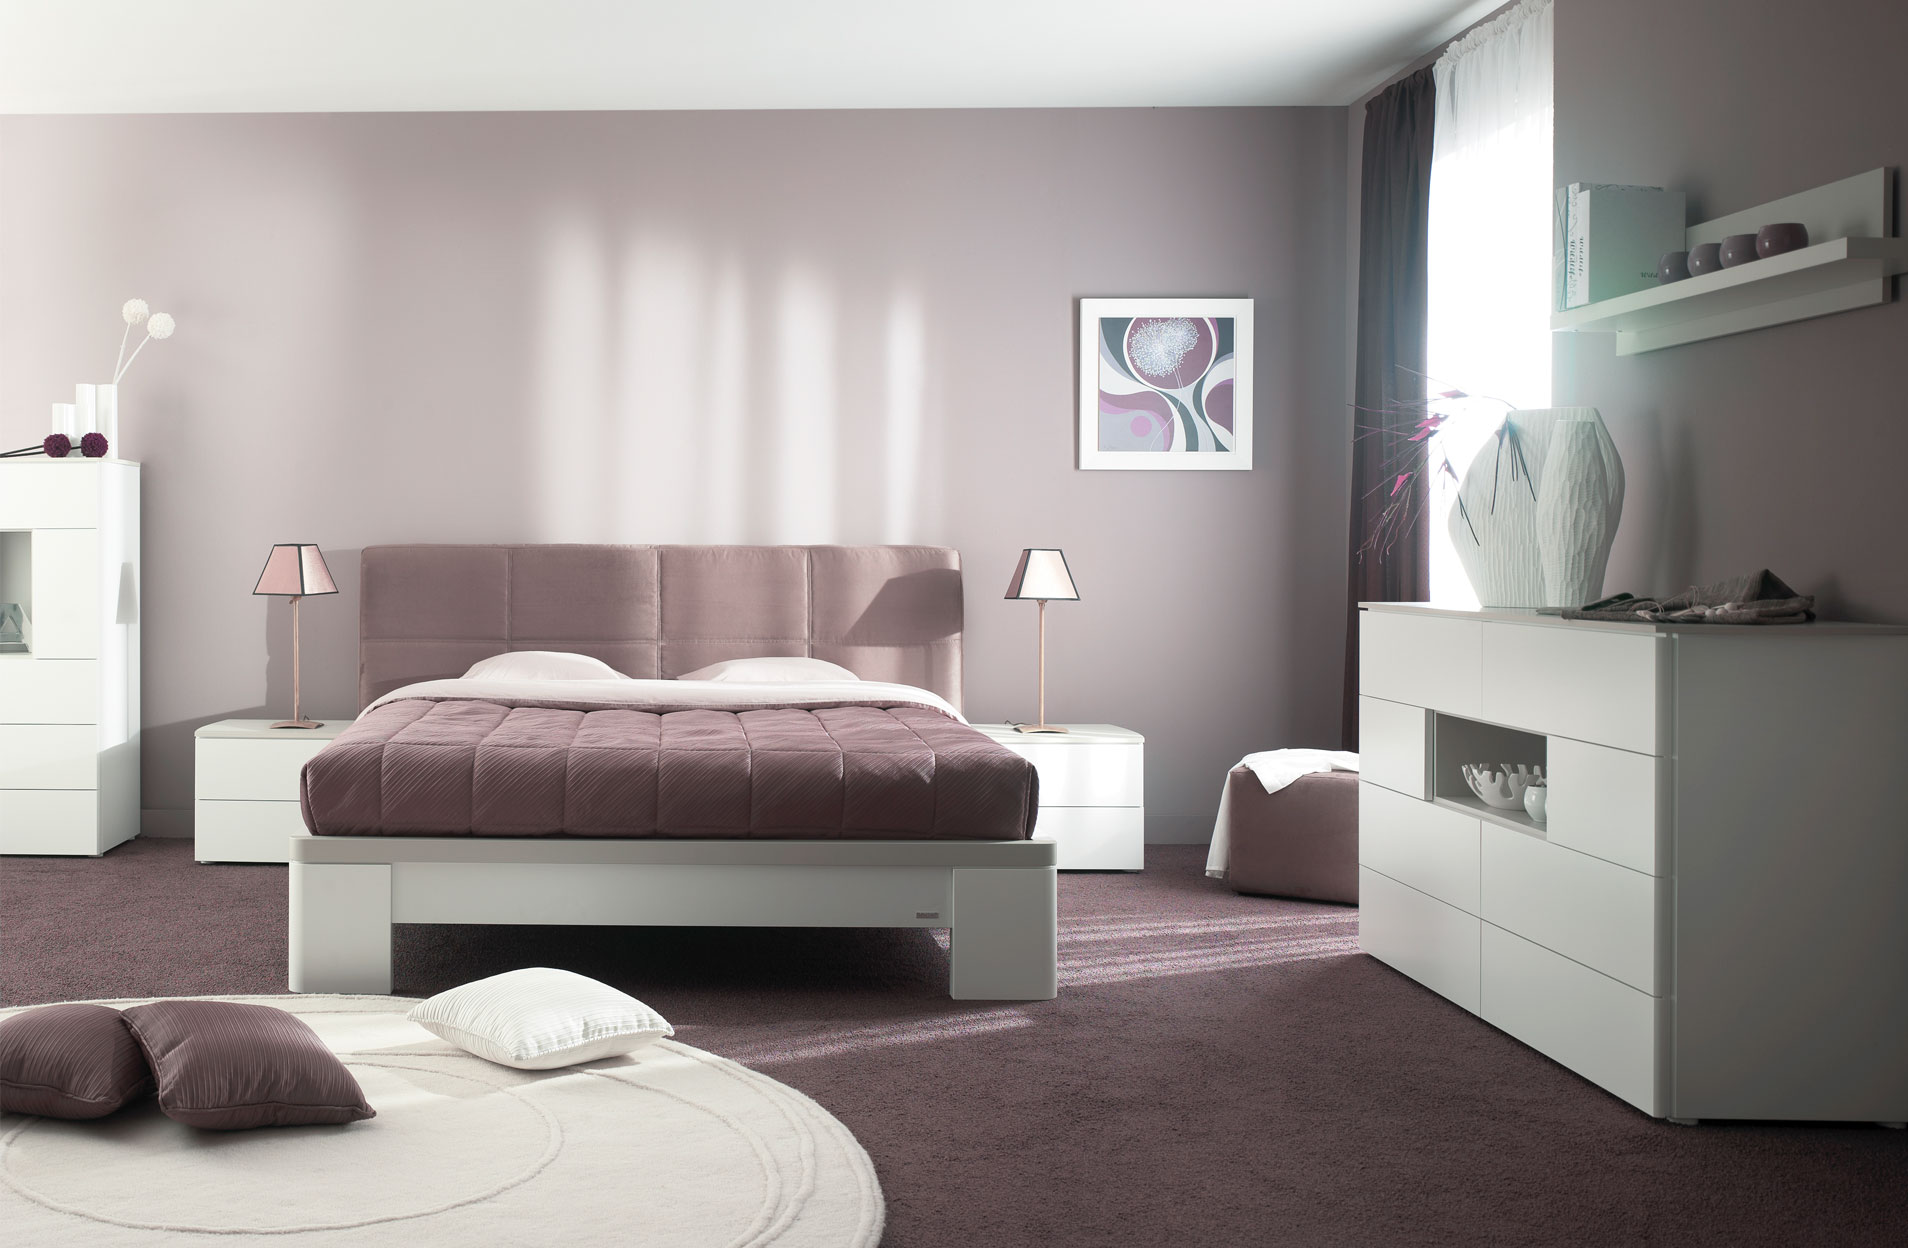 Inspiration d coration de chambre contemporaine gautier opalia for Les decoration de chambre